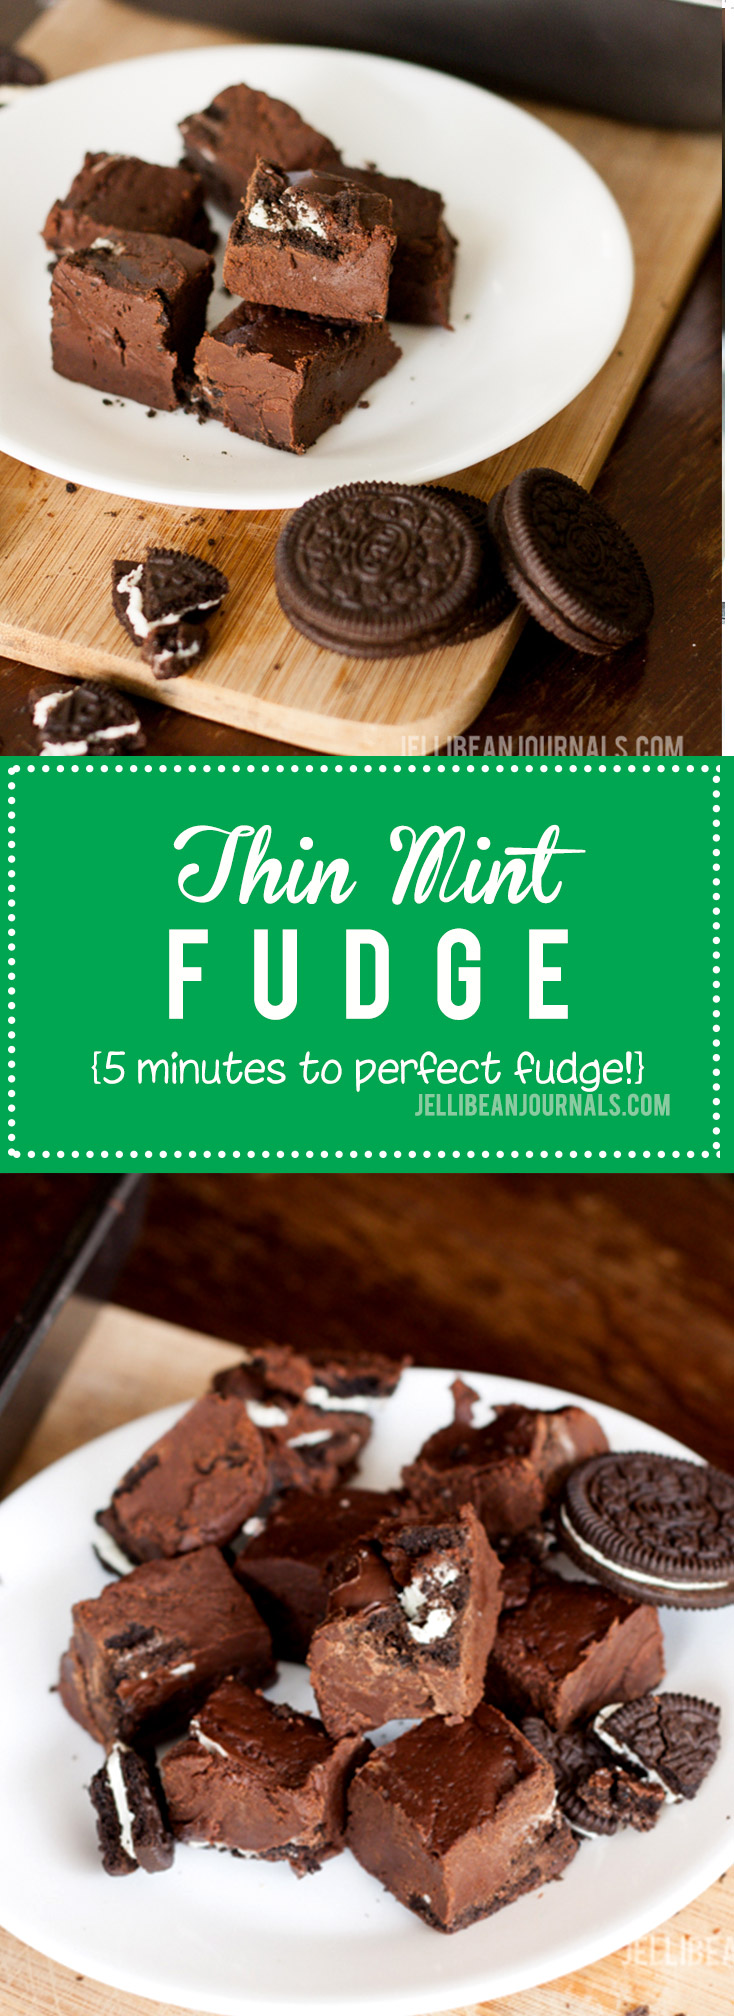 Unforgettable Thin Mint Fudge made with Oreos| Jellibeanjournals.com